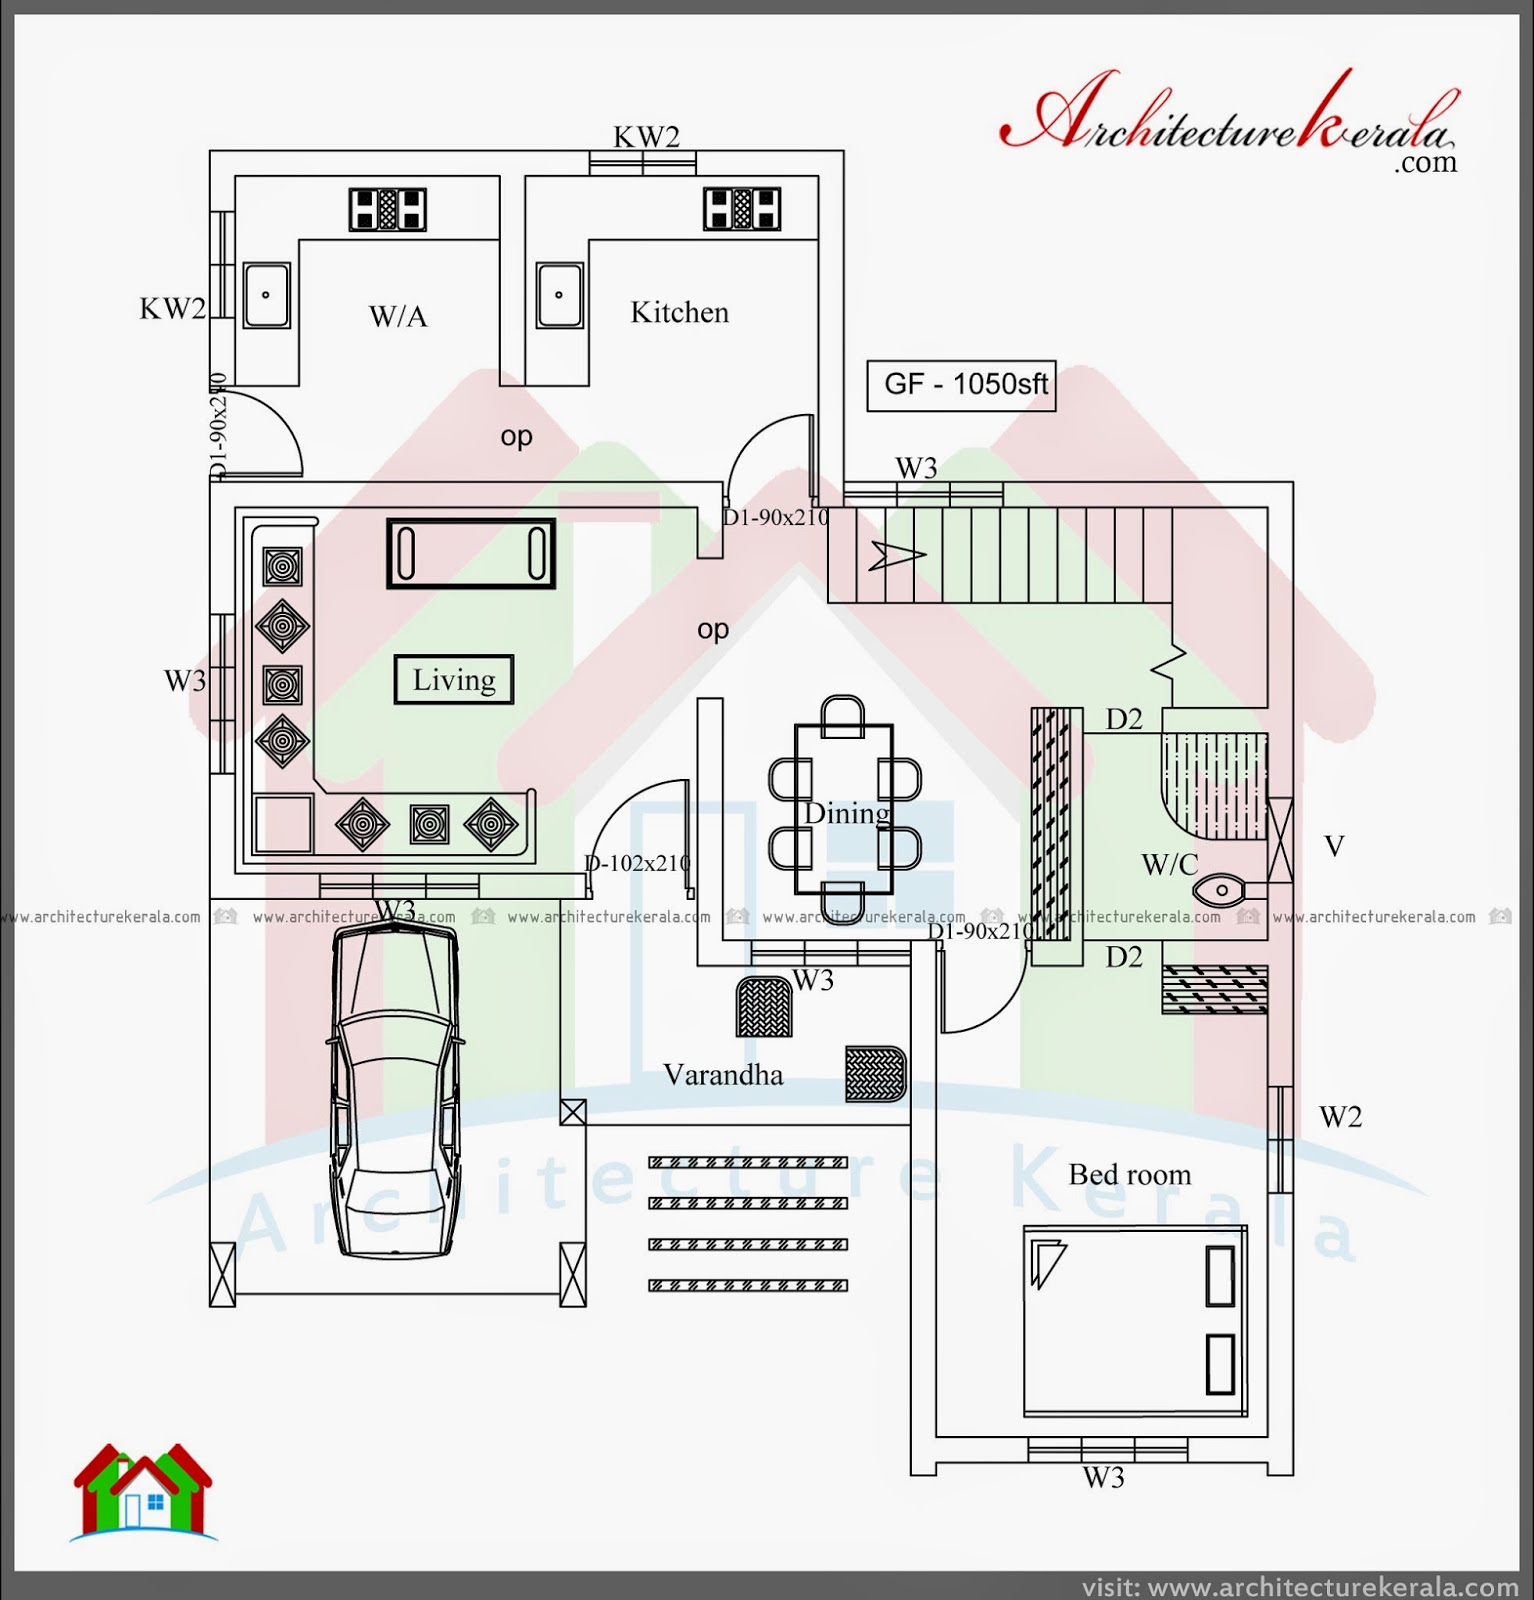 Three bedroom two storey house plan architecture kerala for 2 story house design